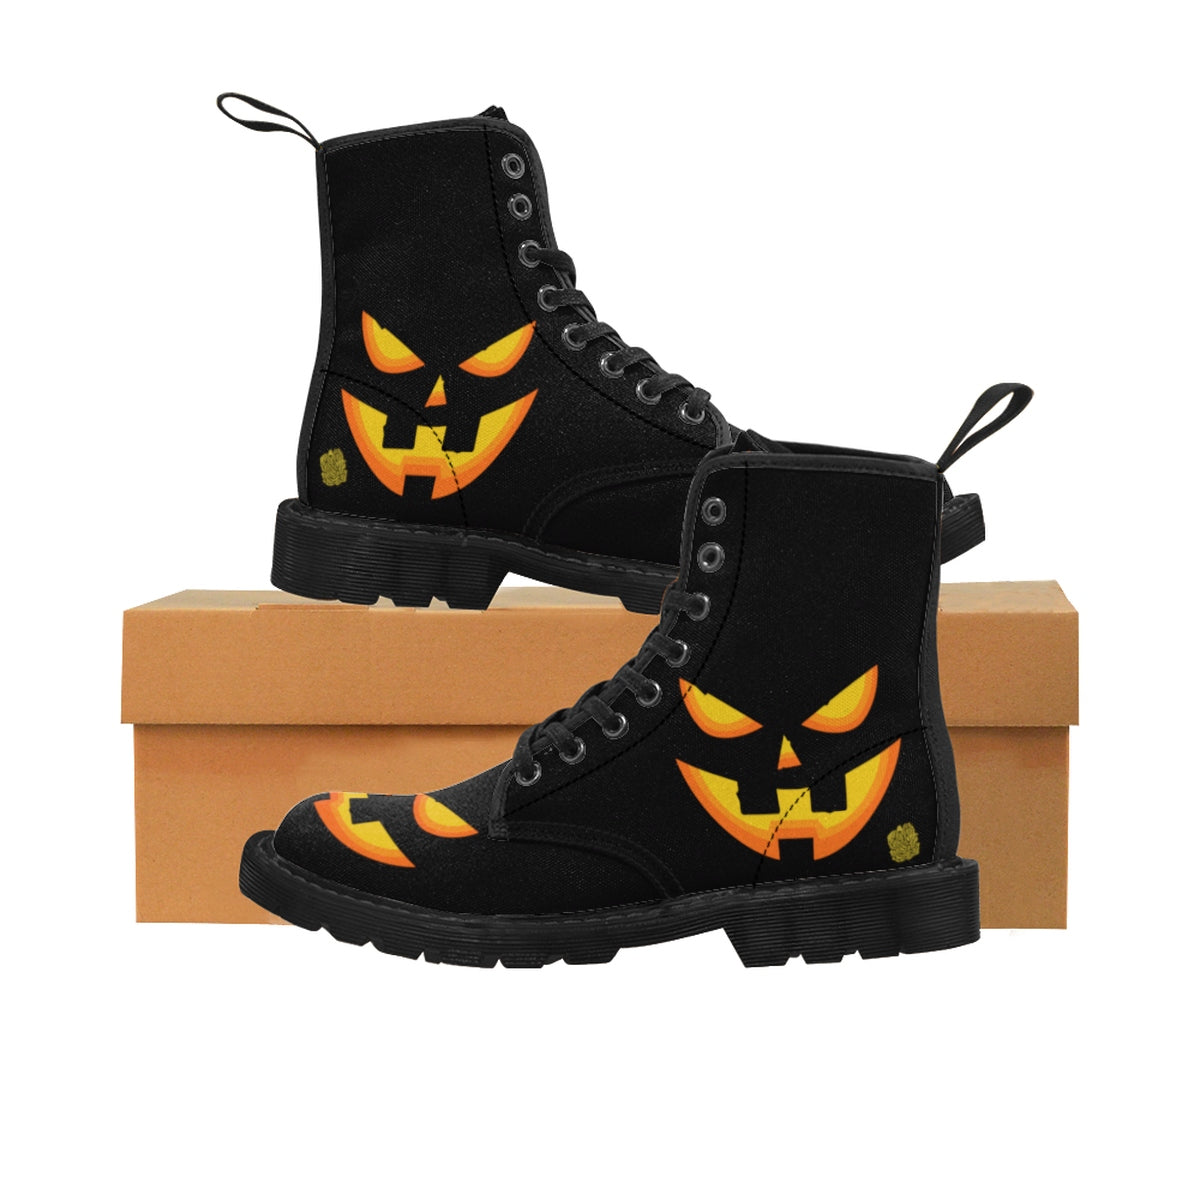 Halloween Pumpkin Face Men's Lace-Up Winter Boots Men's Shoes (US Size: 7-10.5)-Men's Winter Boots-Black-US 9-Heidi Kimura Art LLC